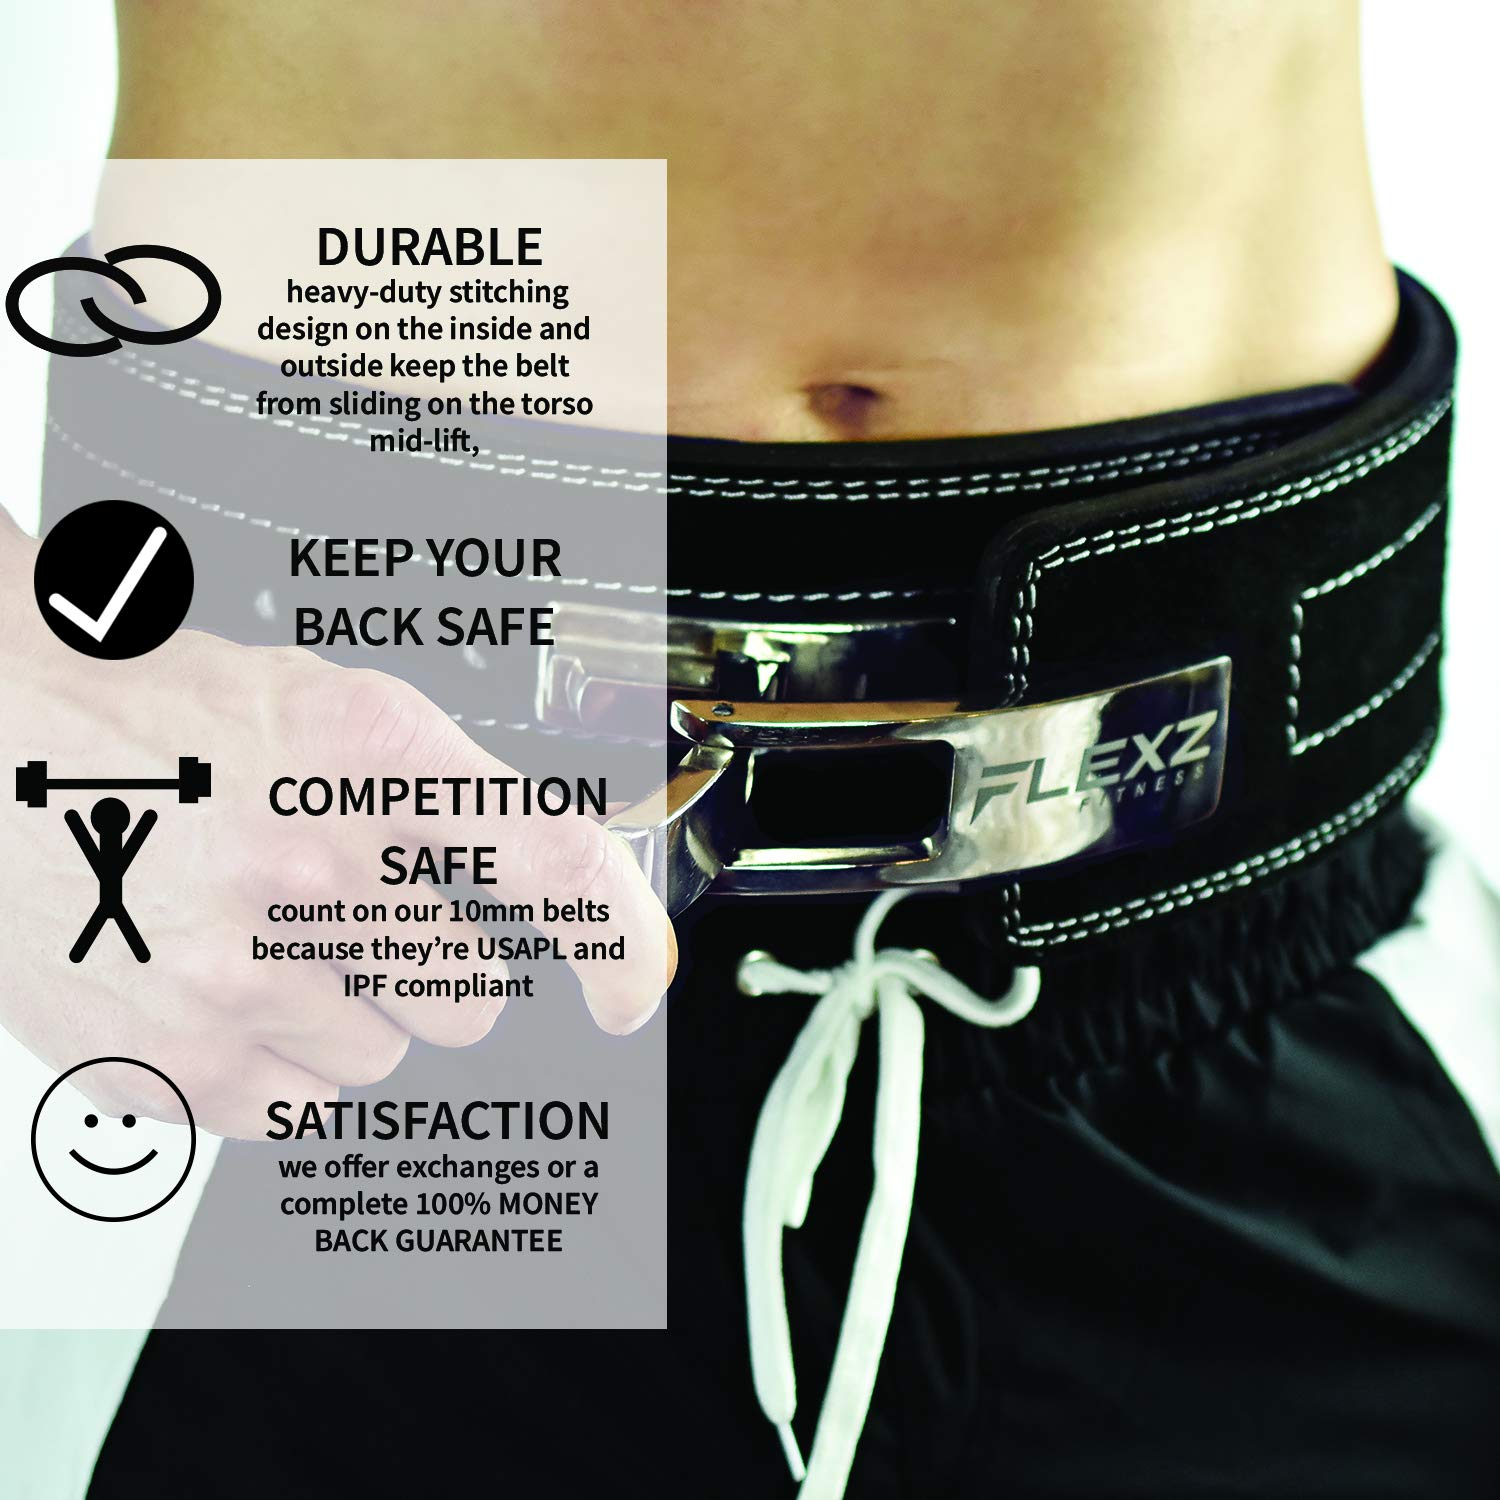 Flexz Fitness Lever Buckle Powerlifting Belt 10mm Weight Lifting Black Medium by Flexz Fitness (Image #4)